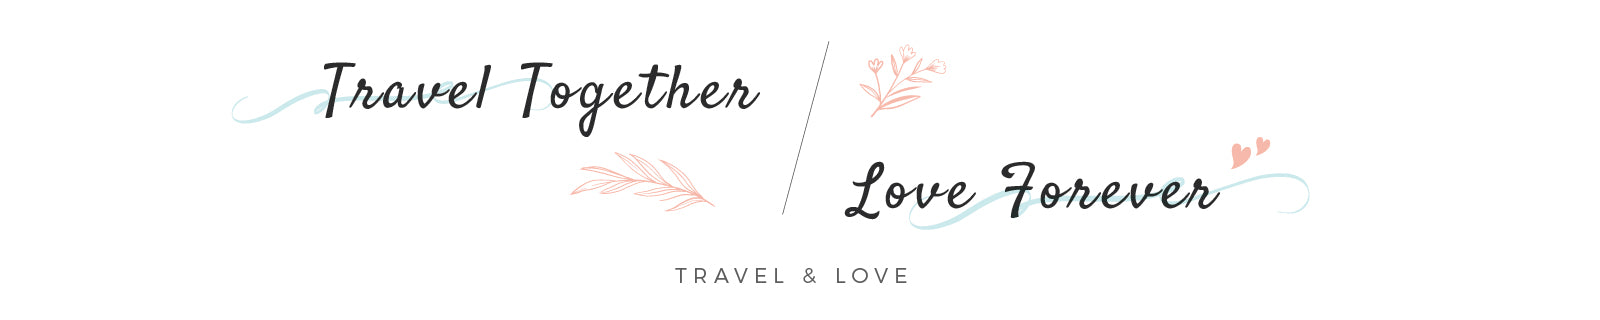 Travel Together, Love Forever